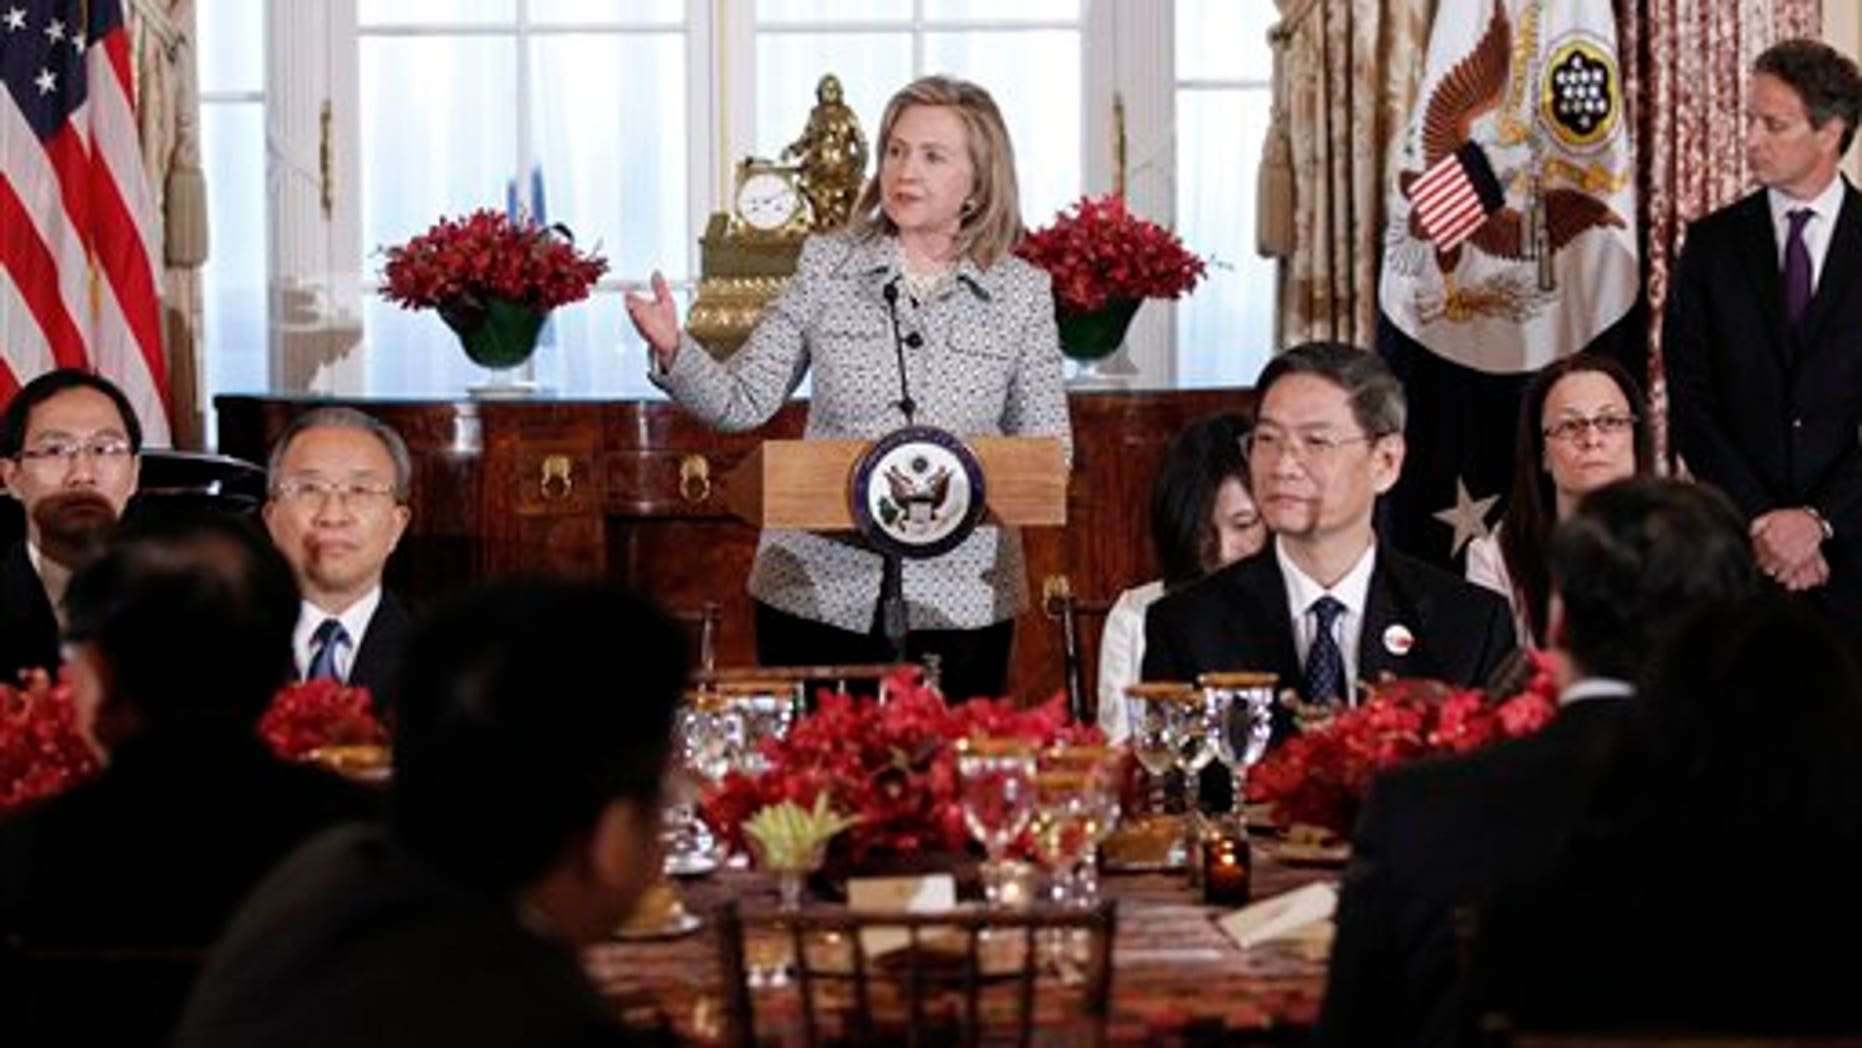 May 9: Secretary of State Hillary Clinton gives remarks during a dinner for the joint meeting of the U.S.-China Strategic and Economic Dialogue at the State Department.